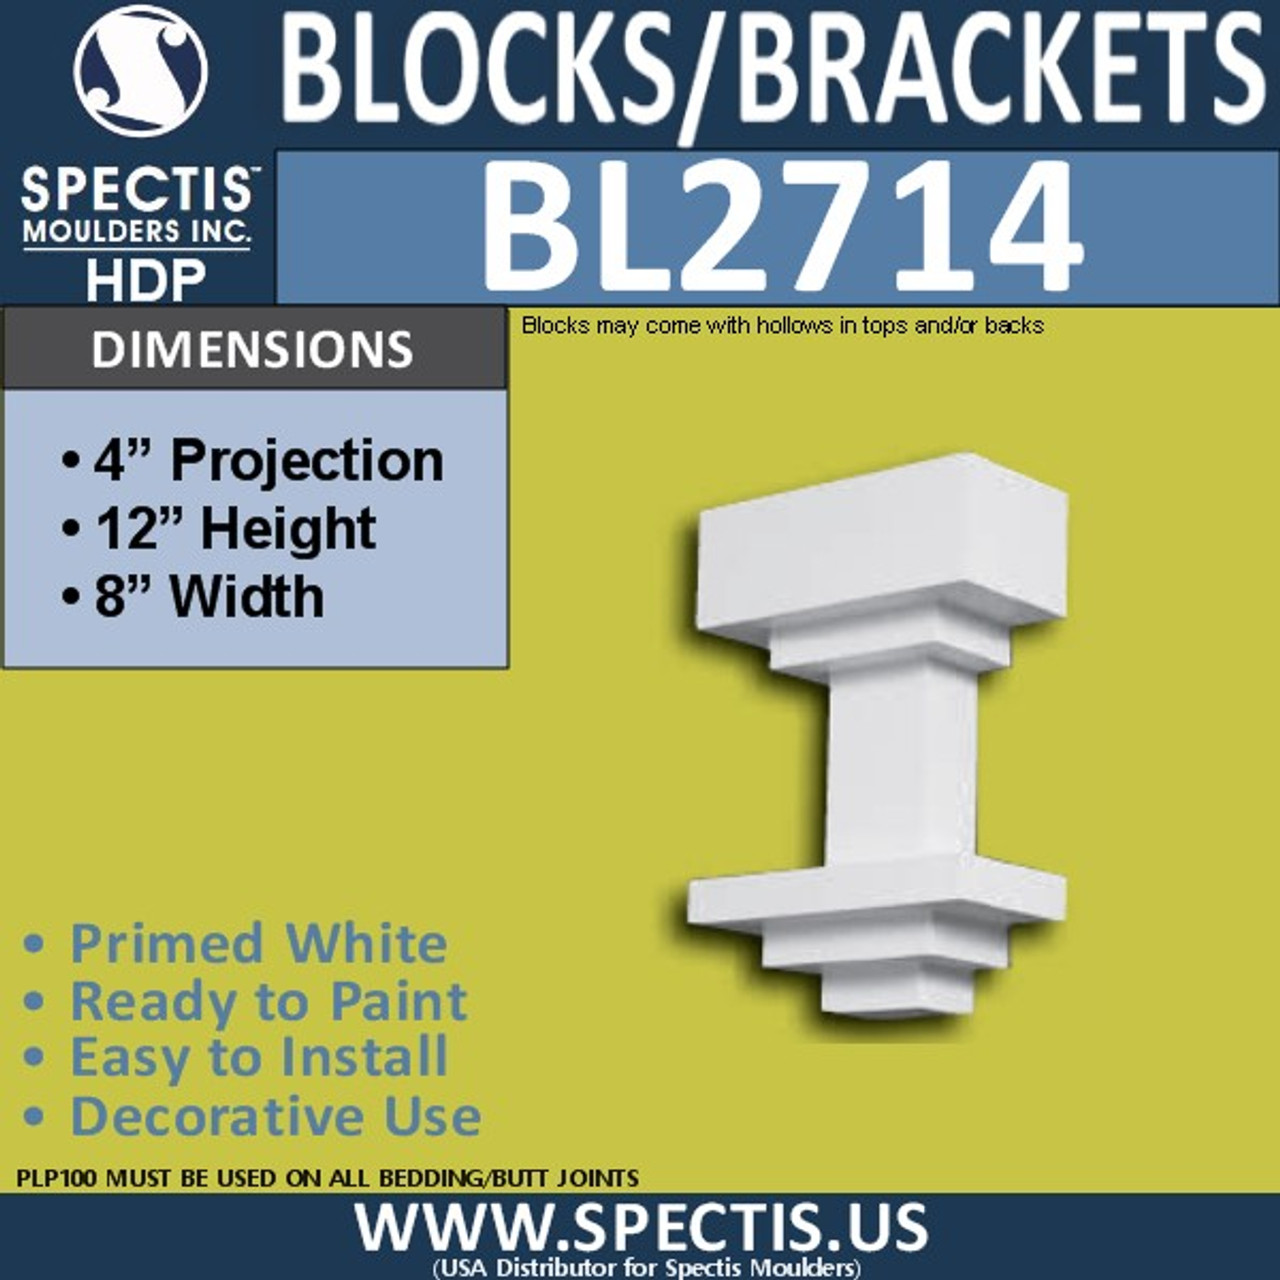 "BL2714 Eave Block or Bracket 8""W x 12""H x 4"" P"